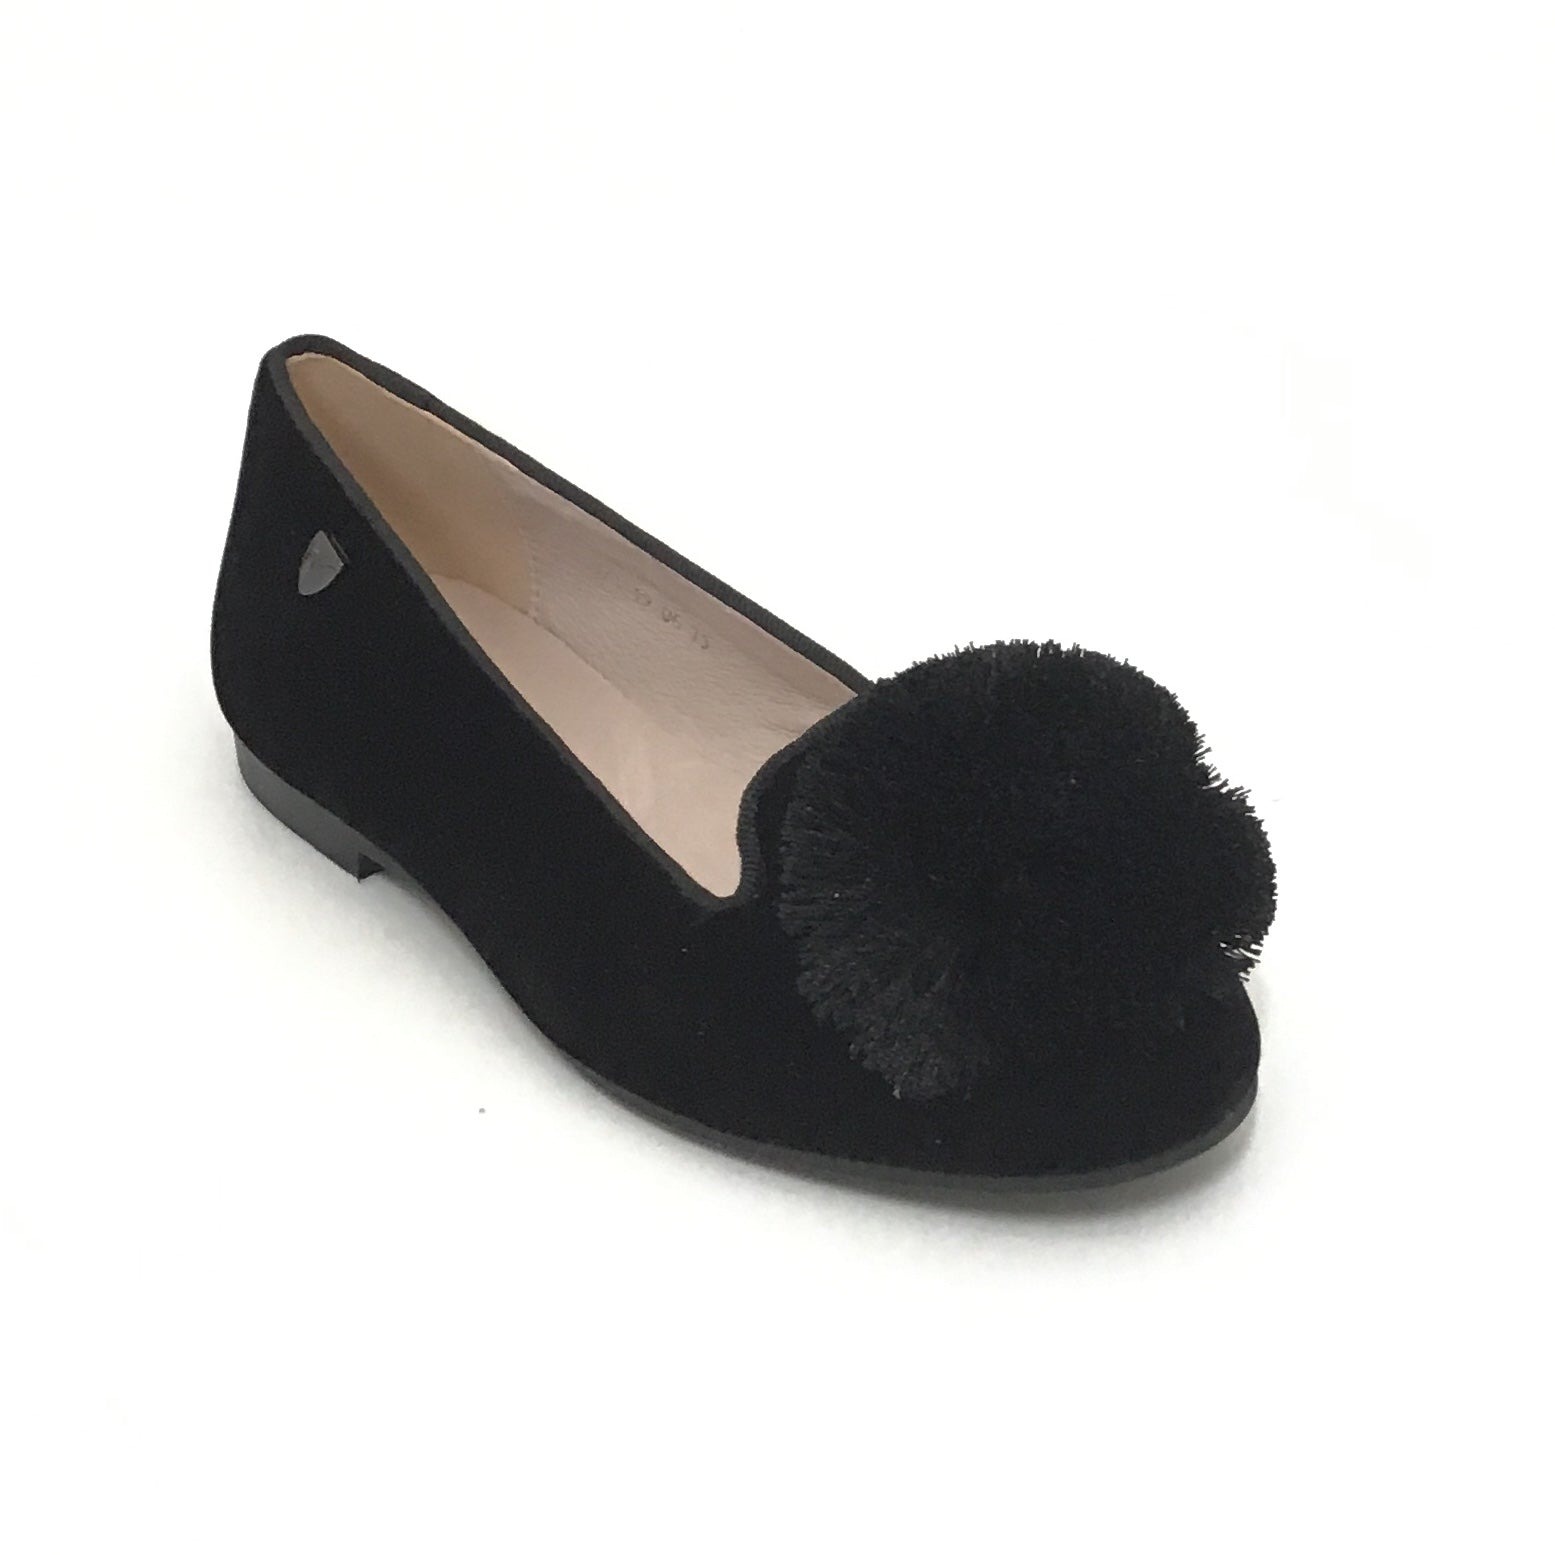 Venettini Black Velvet Shoe With Pom Pom